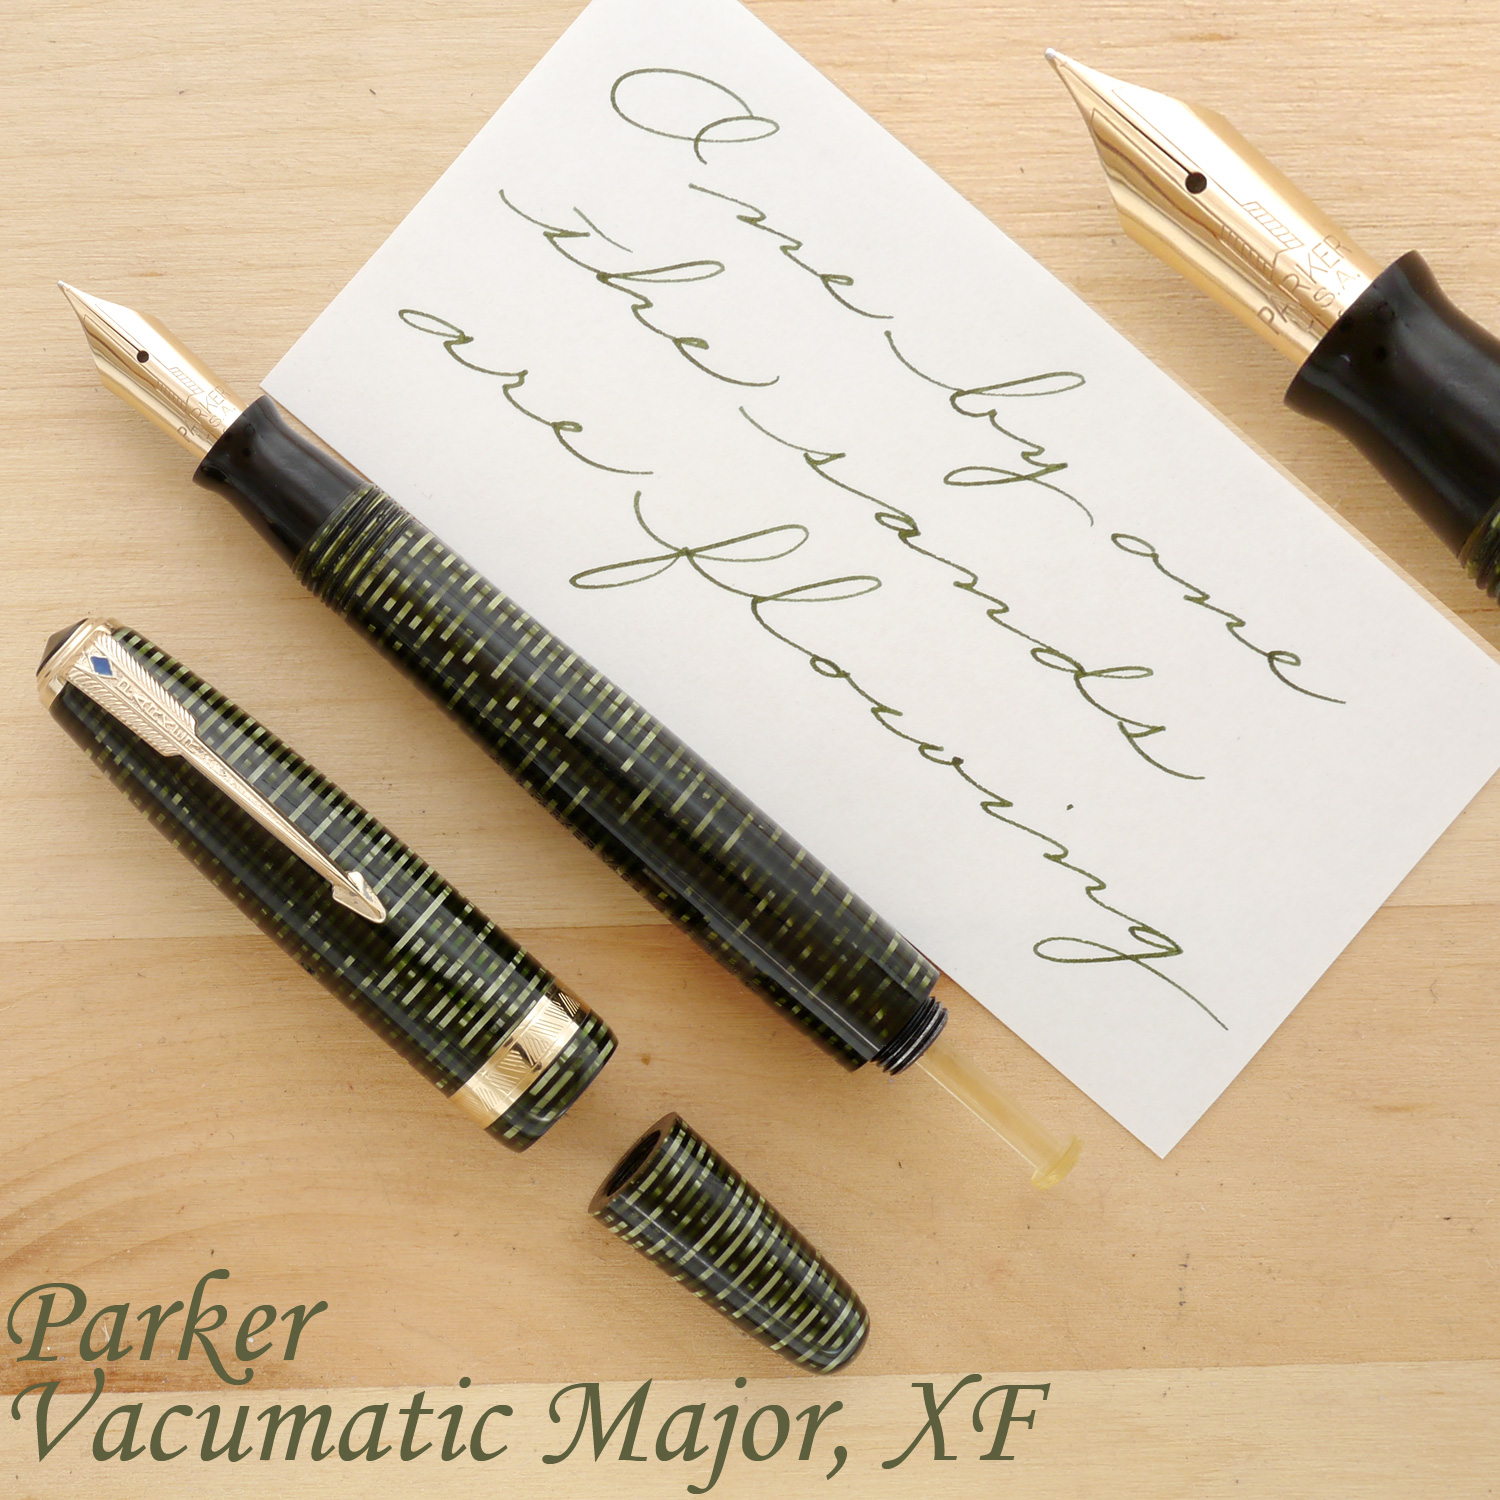 Parker Vacumatic Major, Emerald Pearl, XF, uncapped, with the blind cap off